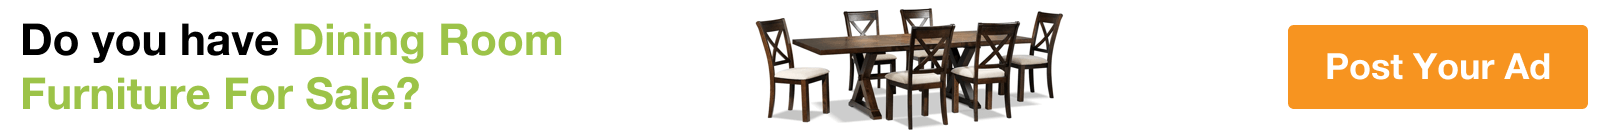 Home & Garden - Dining Room Furniture New in Kuwait